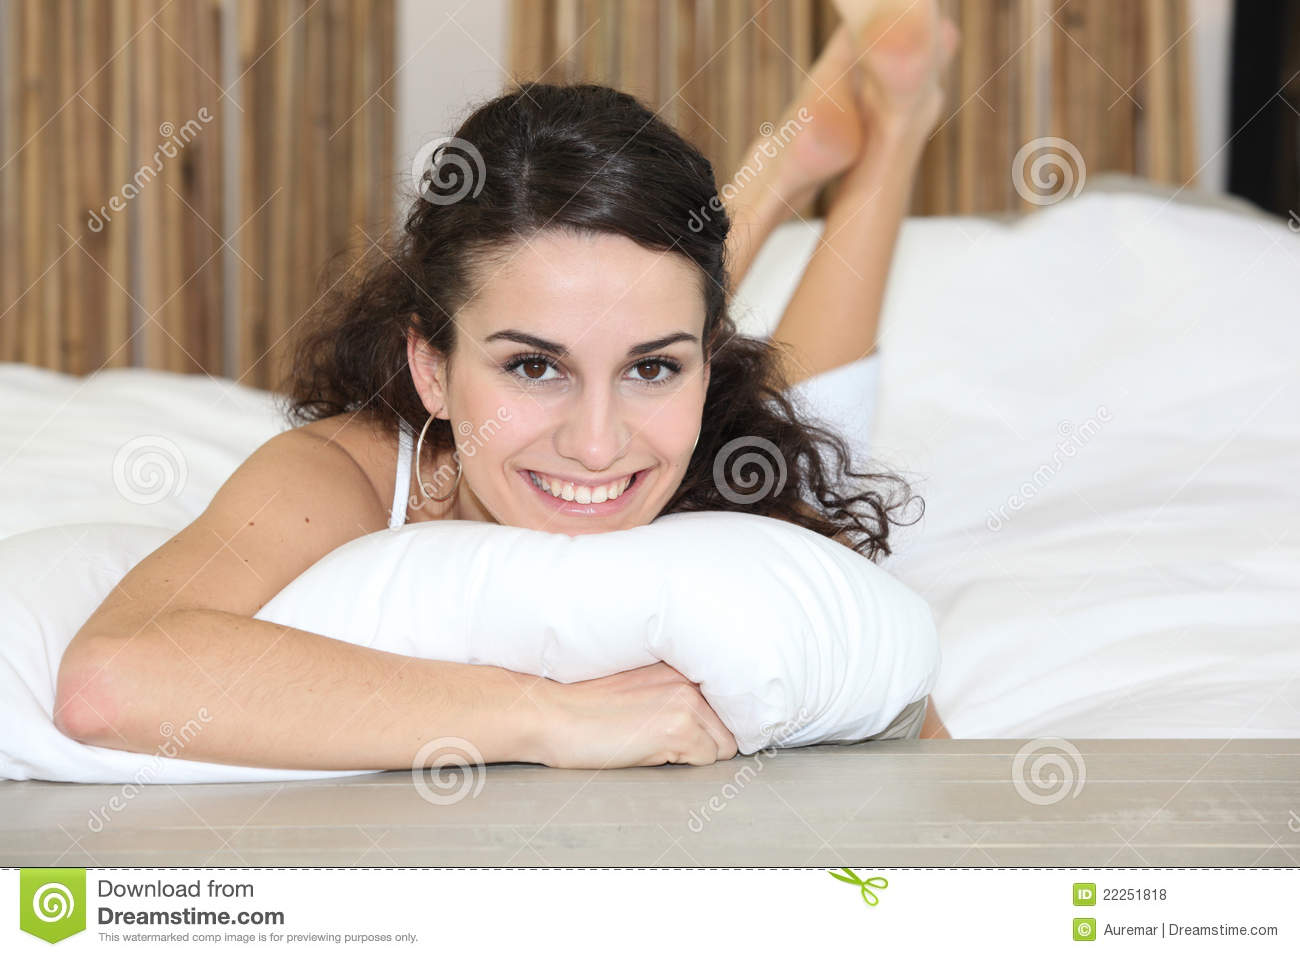 Brunette laying in bed royalty free stock photos image for Sexy bed photos